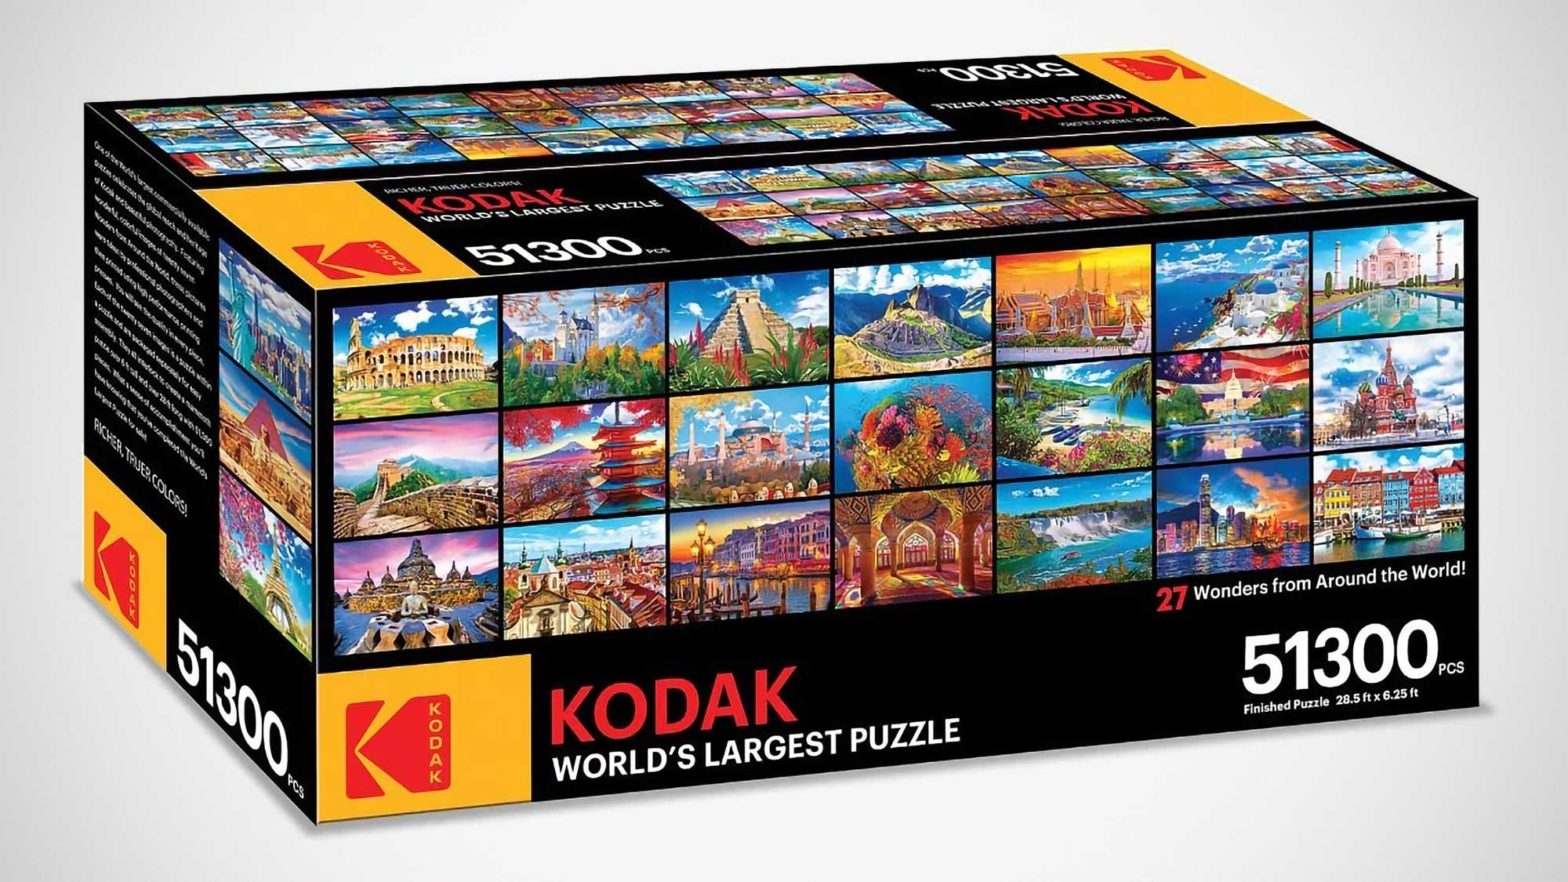 Kodak 51300 Pieces World's Largest Puzzle